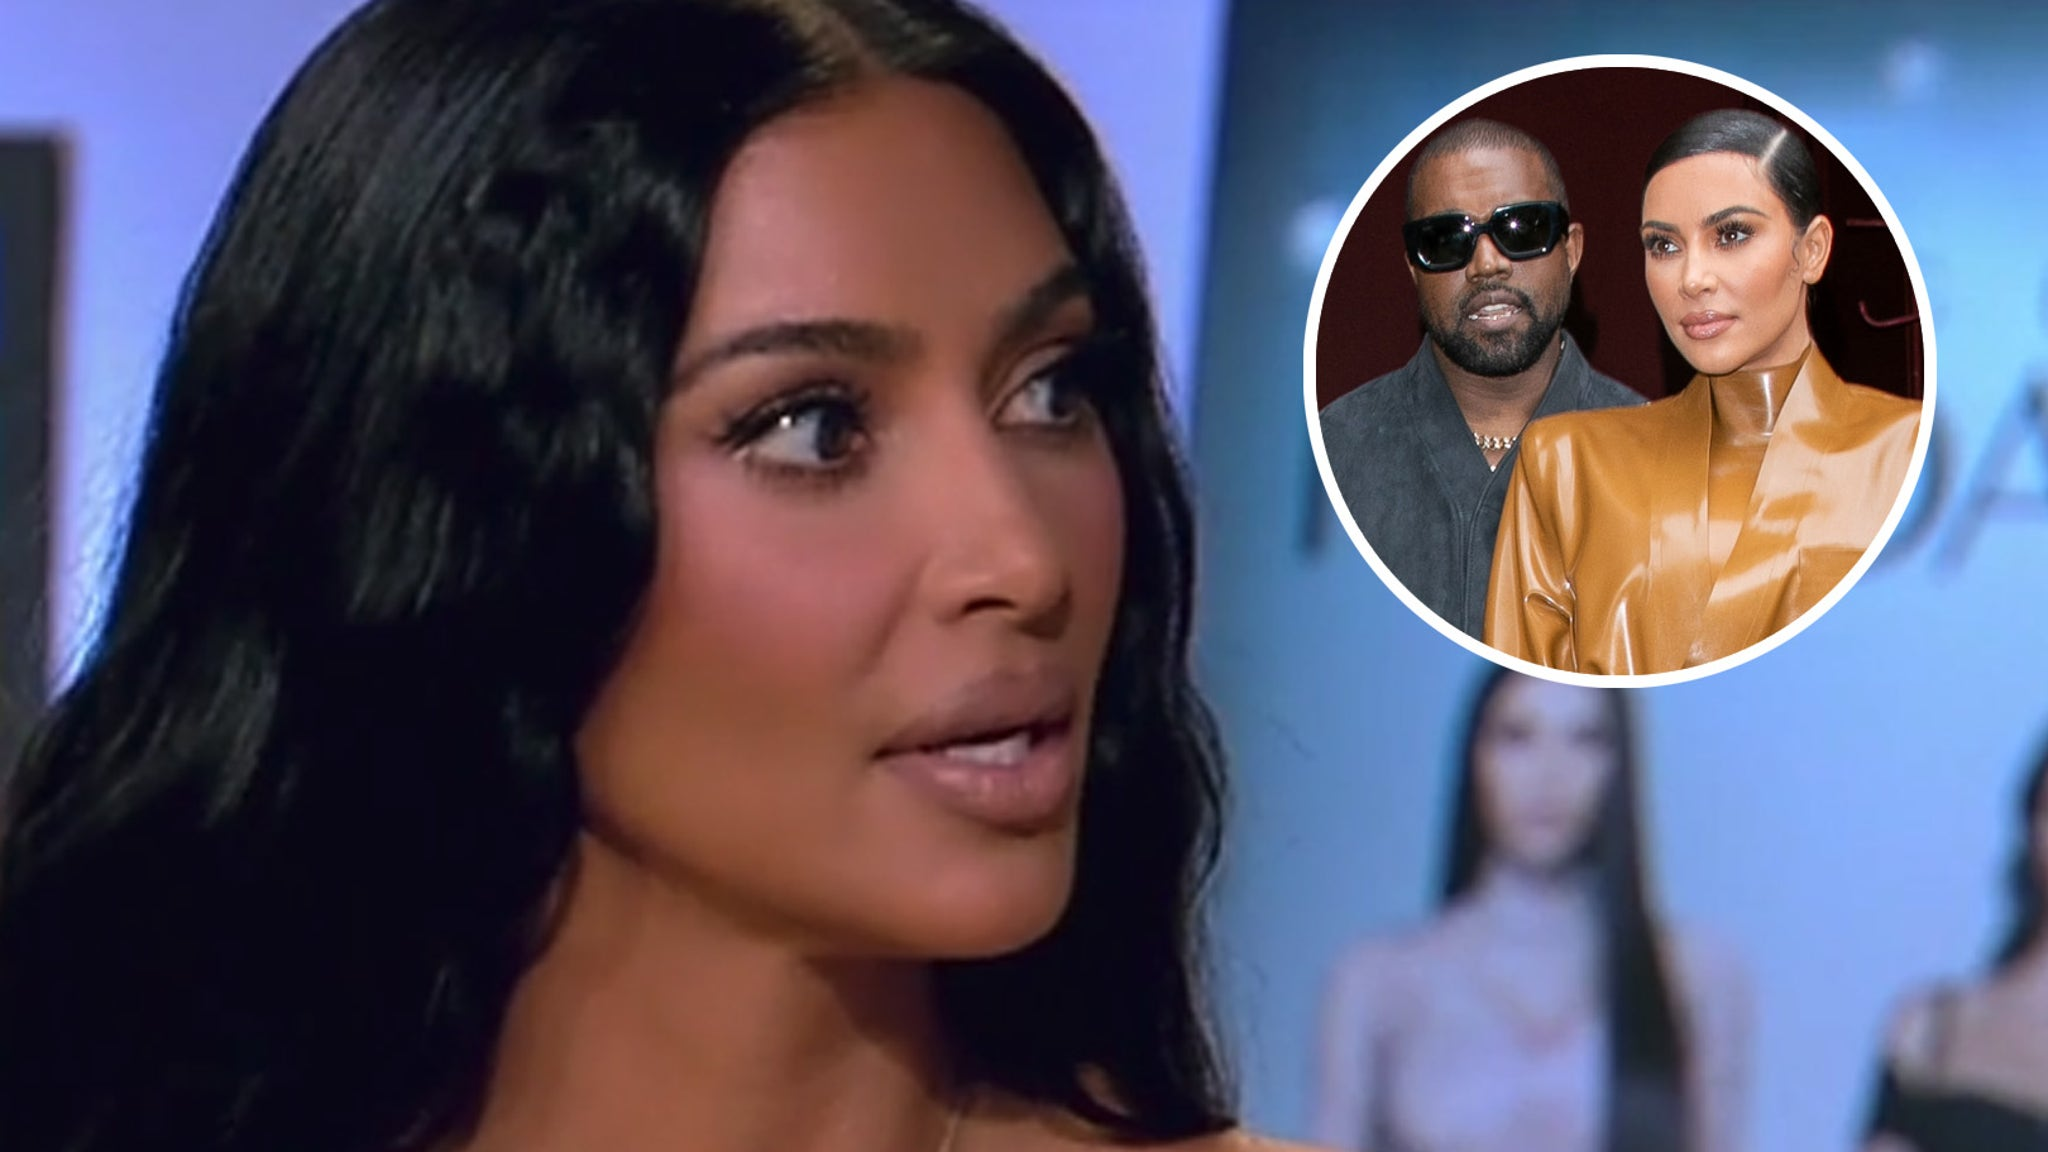 Kim Kardashian explains Kanye West's split and her relationship with him now at KUWTK Reunion